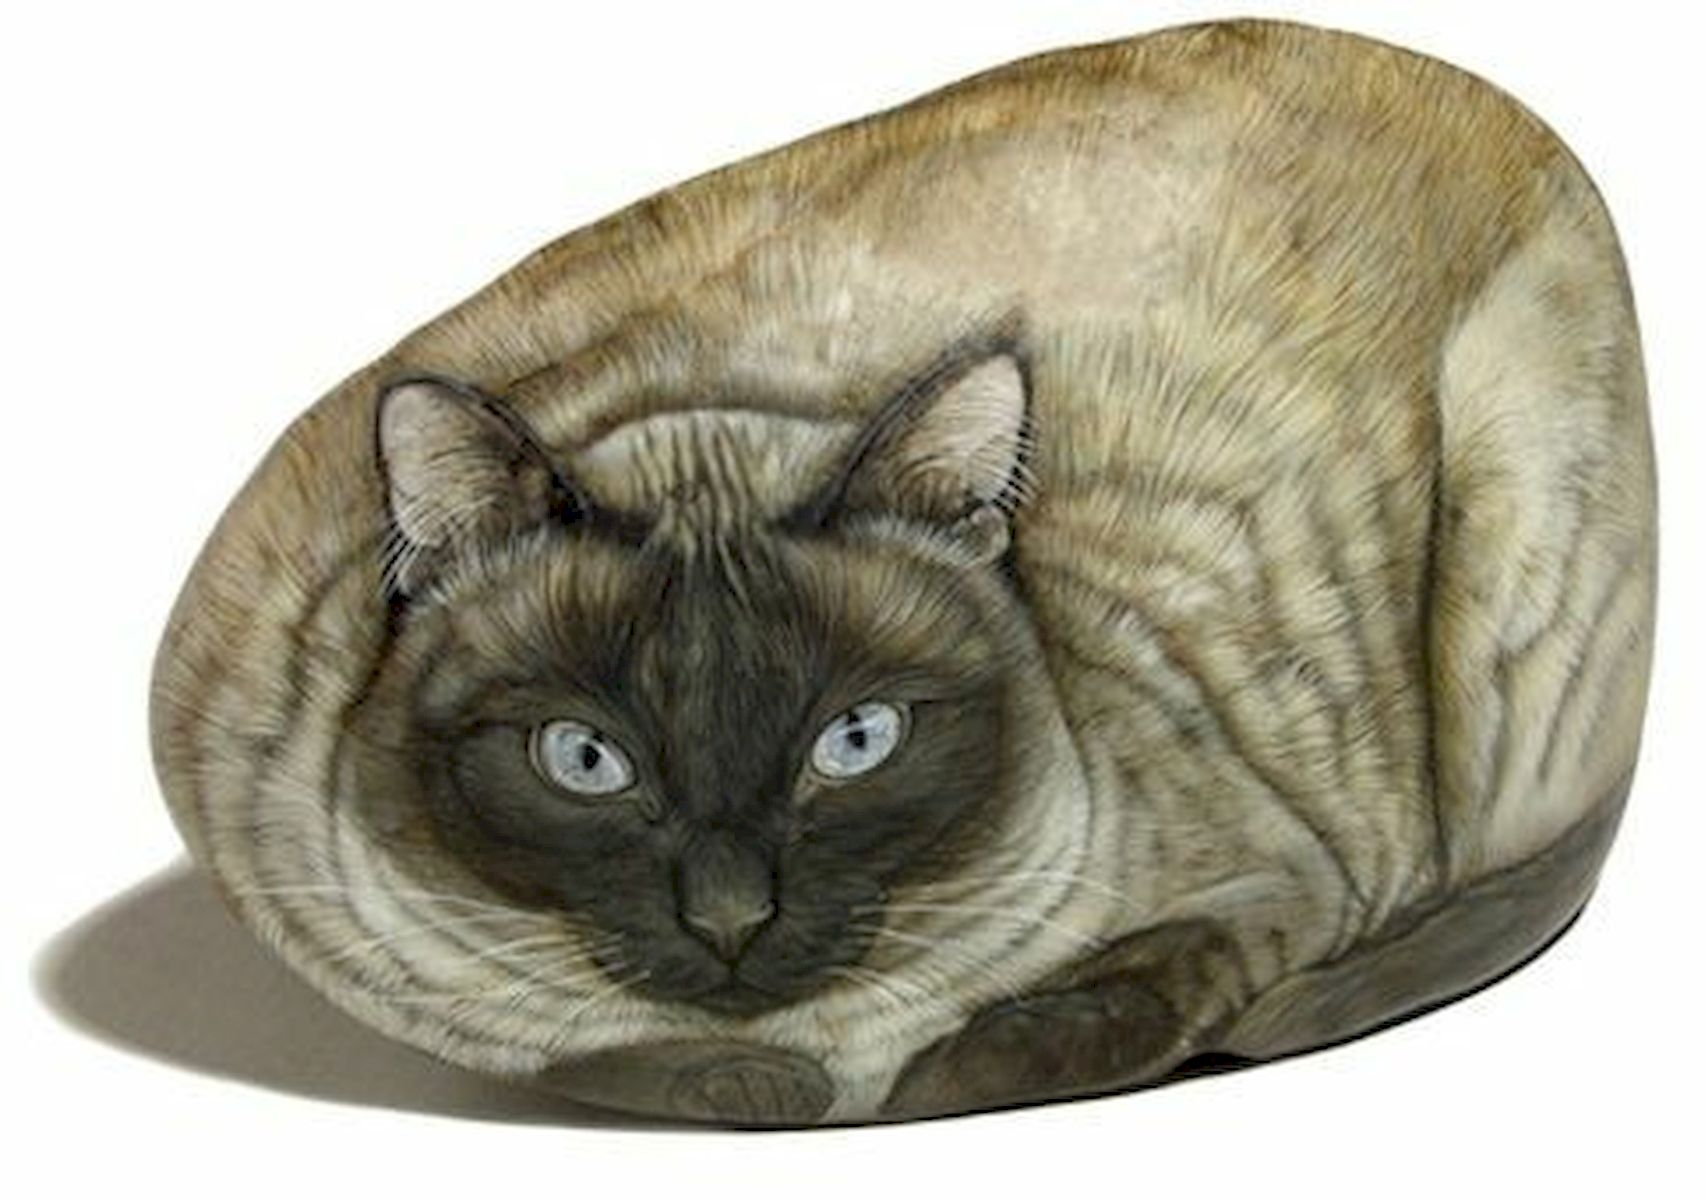 50 Best DIY Painted Rocks Animals Cats for Summer Ideas (34)